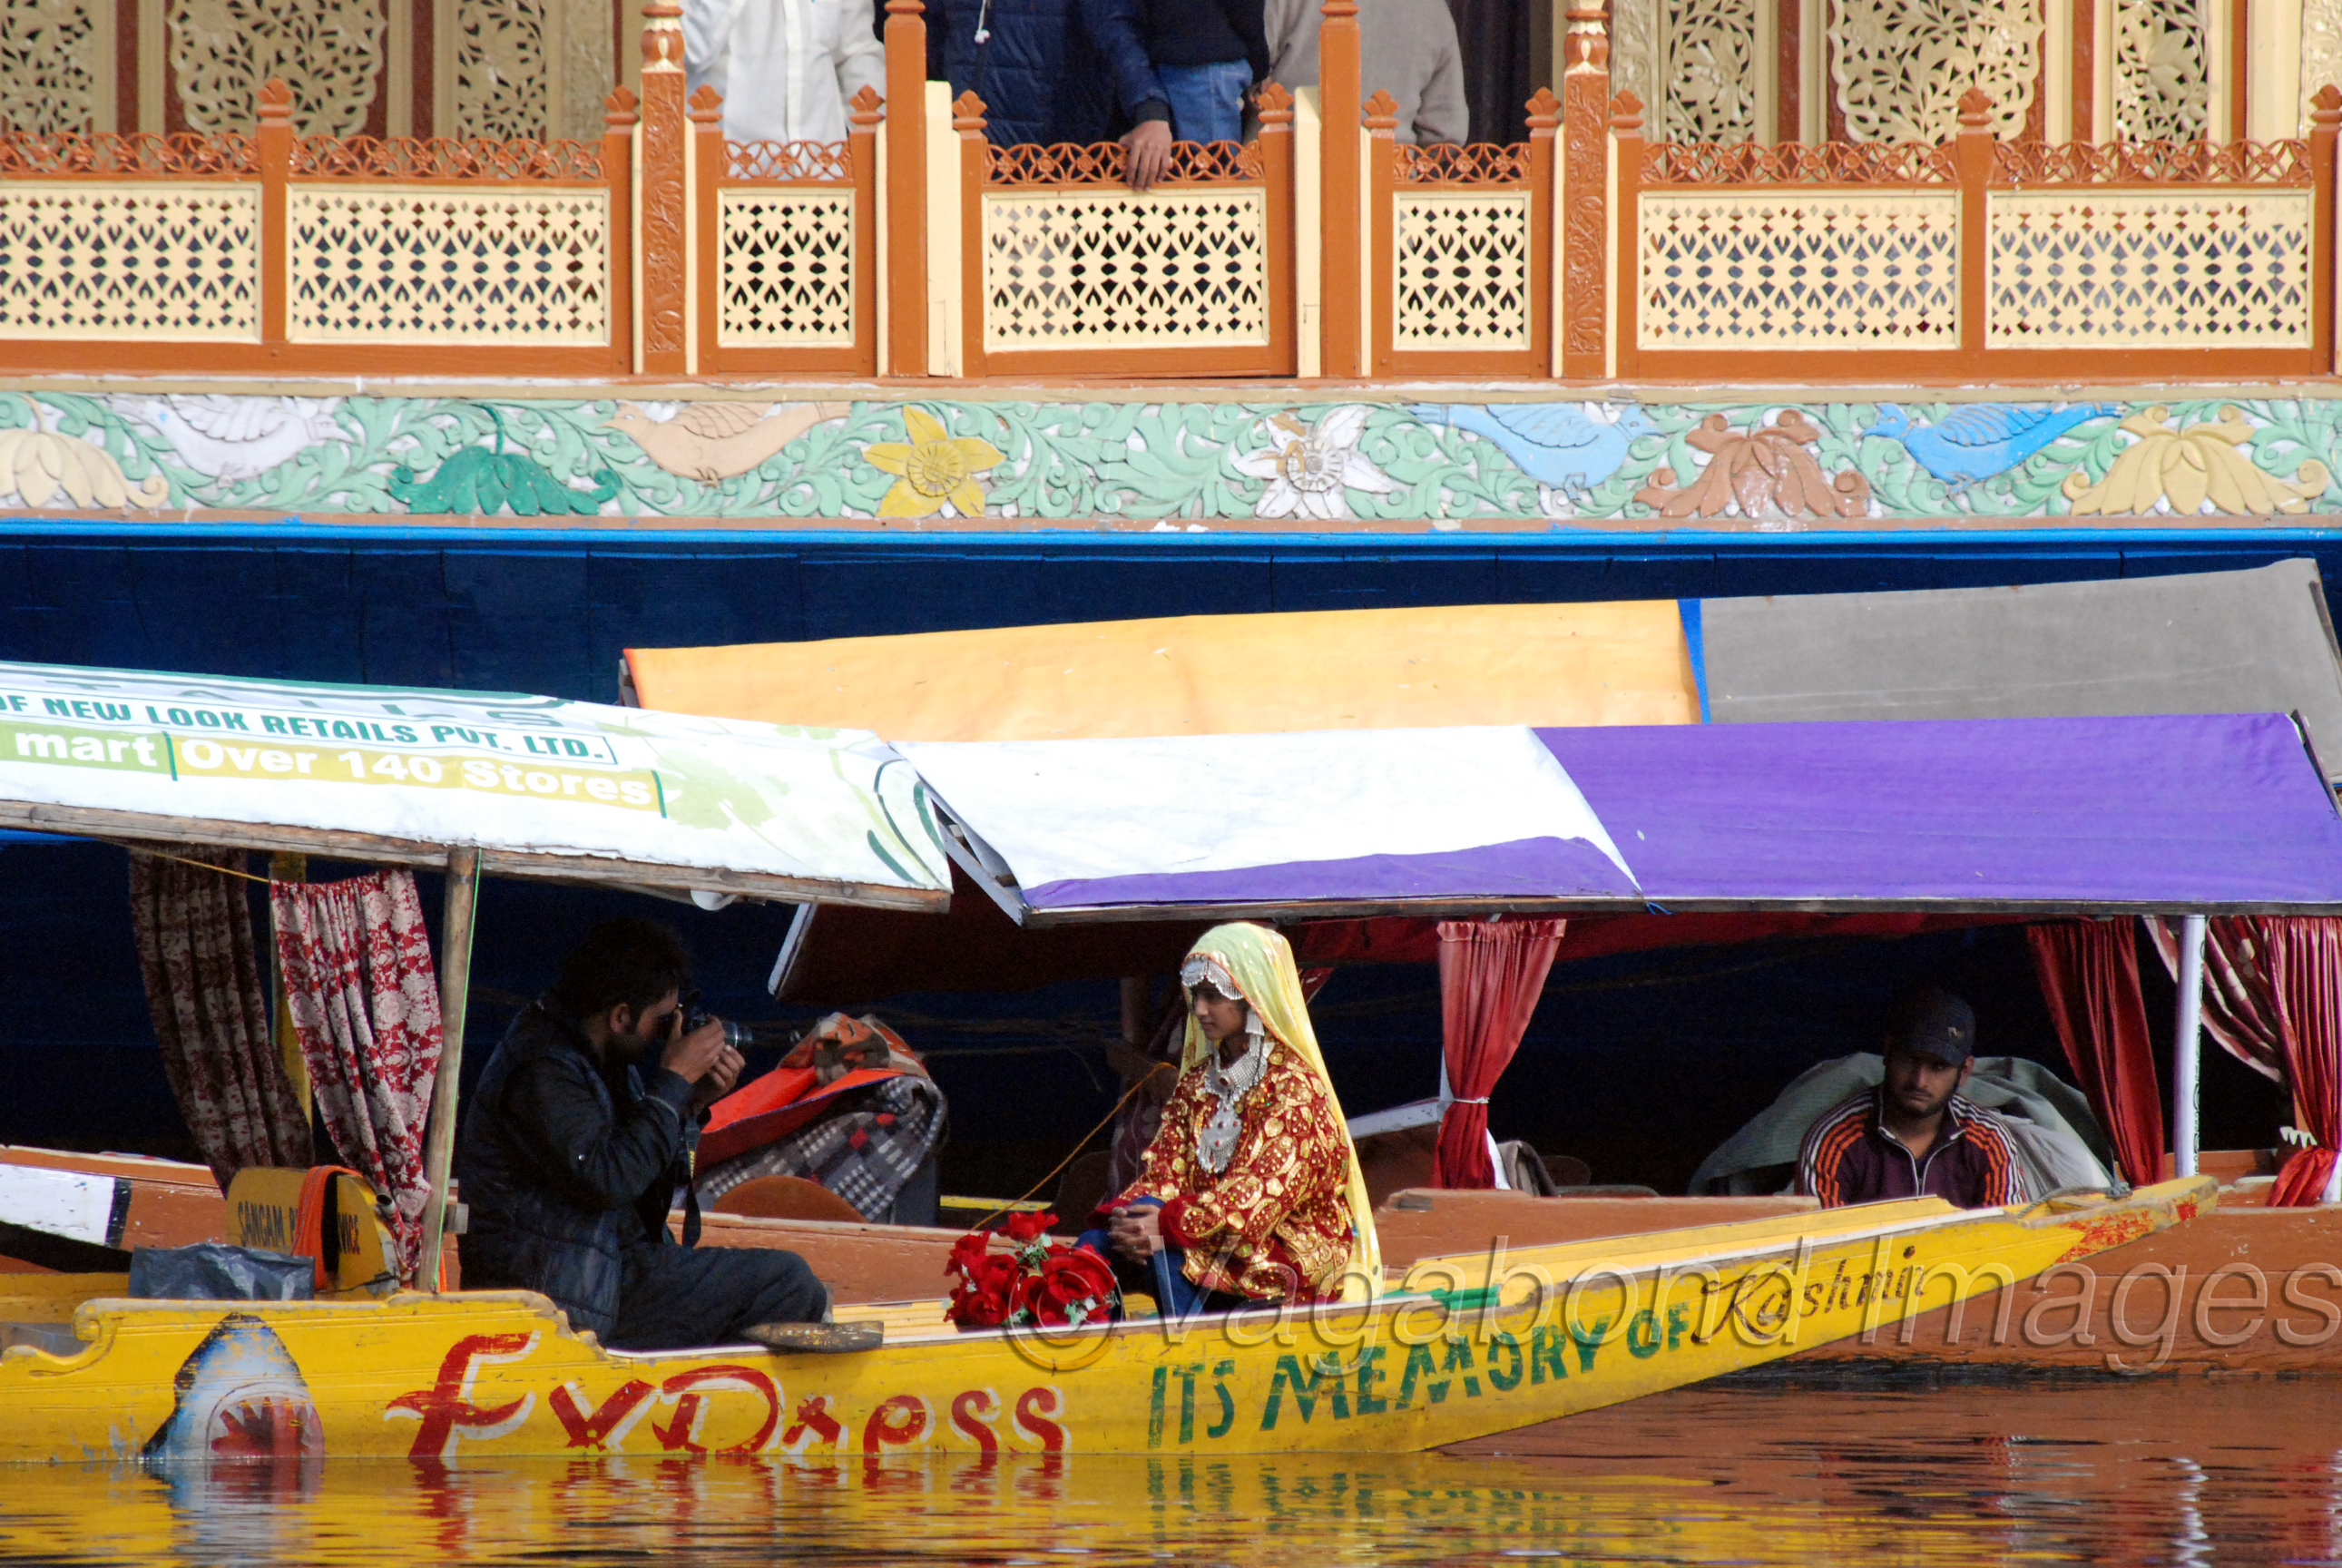 Getting clicked in a Kashmiri dress on a Shikara is one of those things tourists at Dal like the most